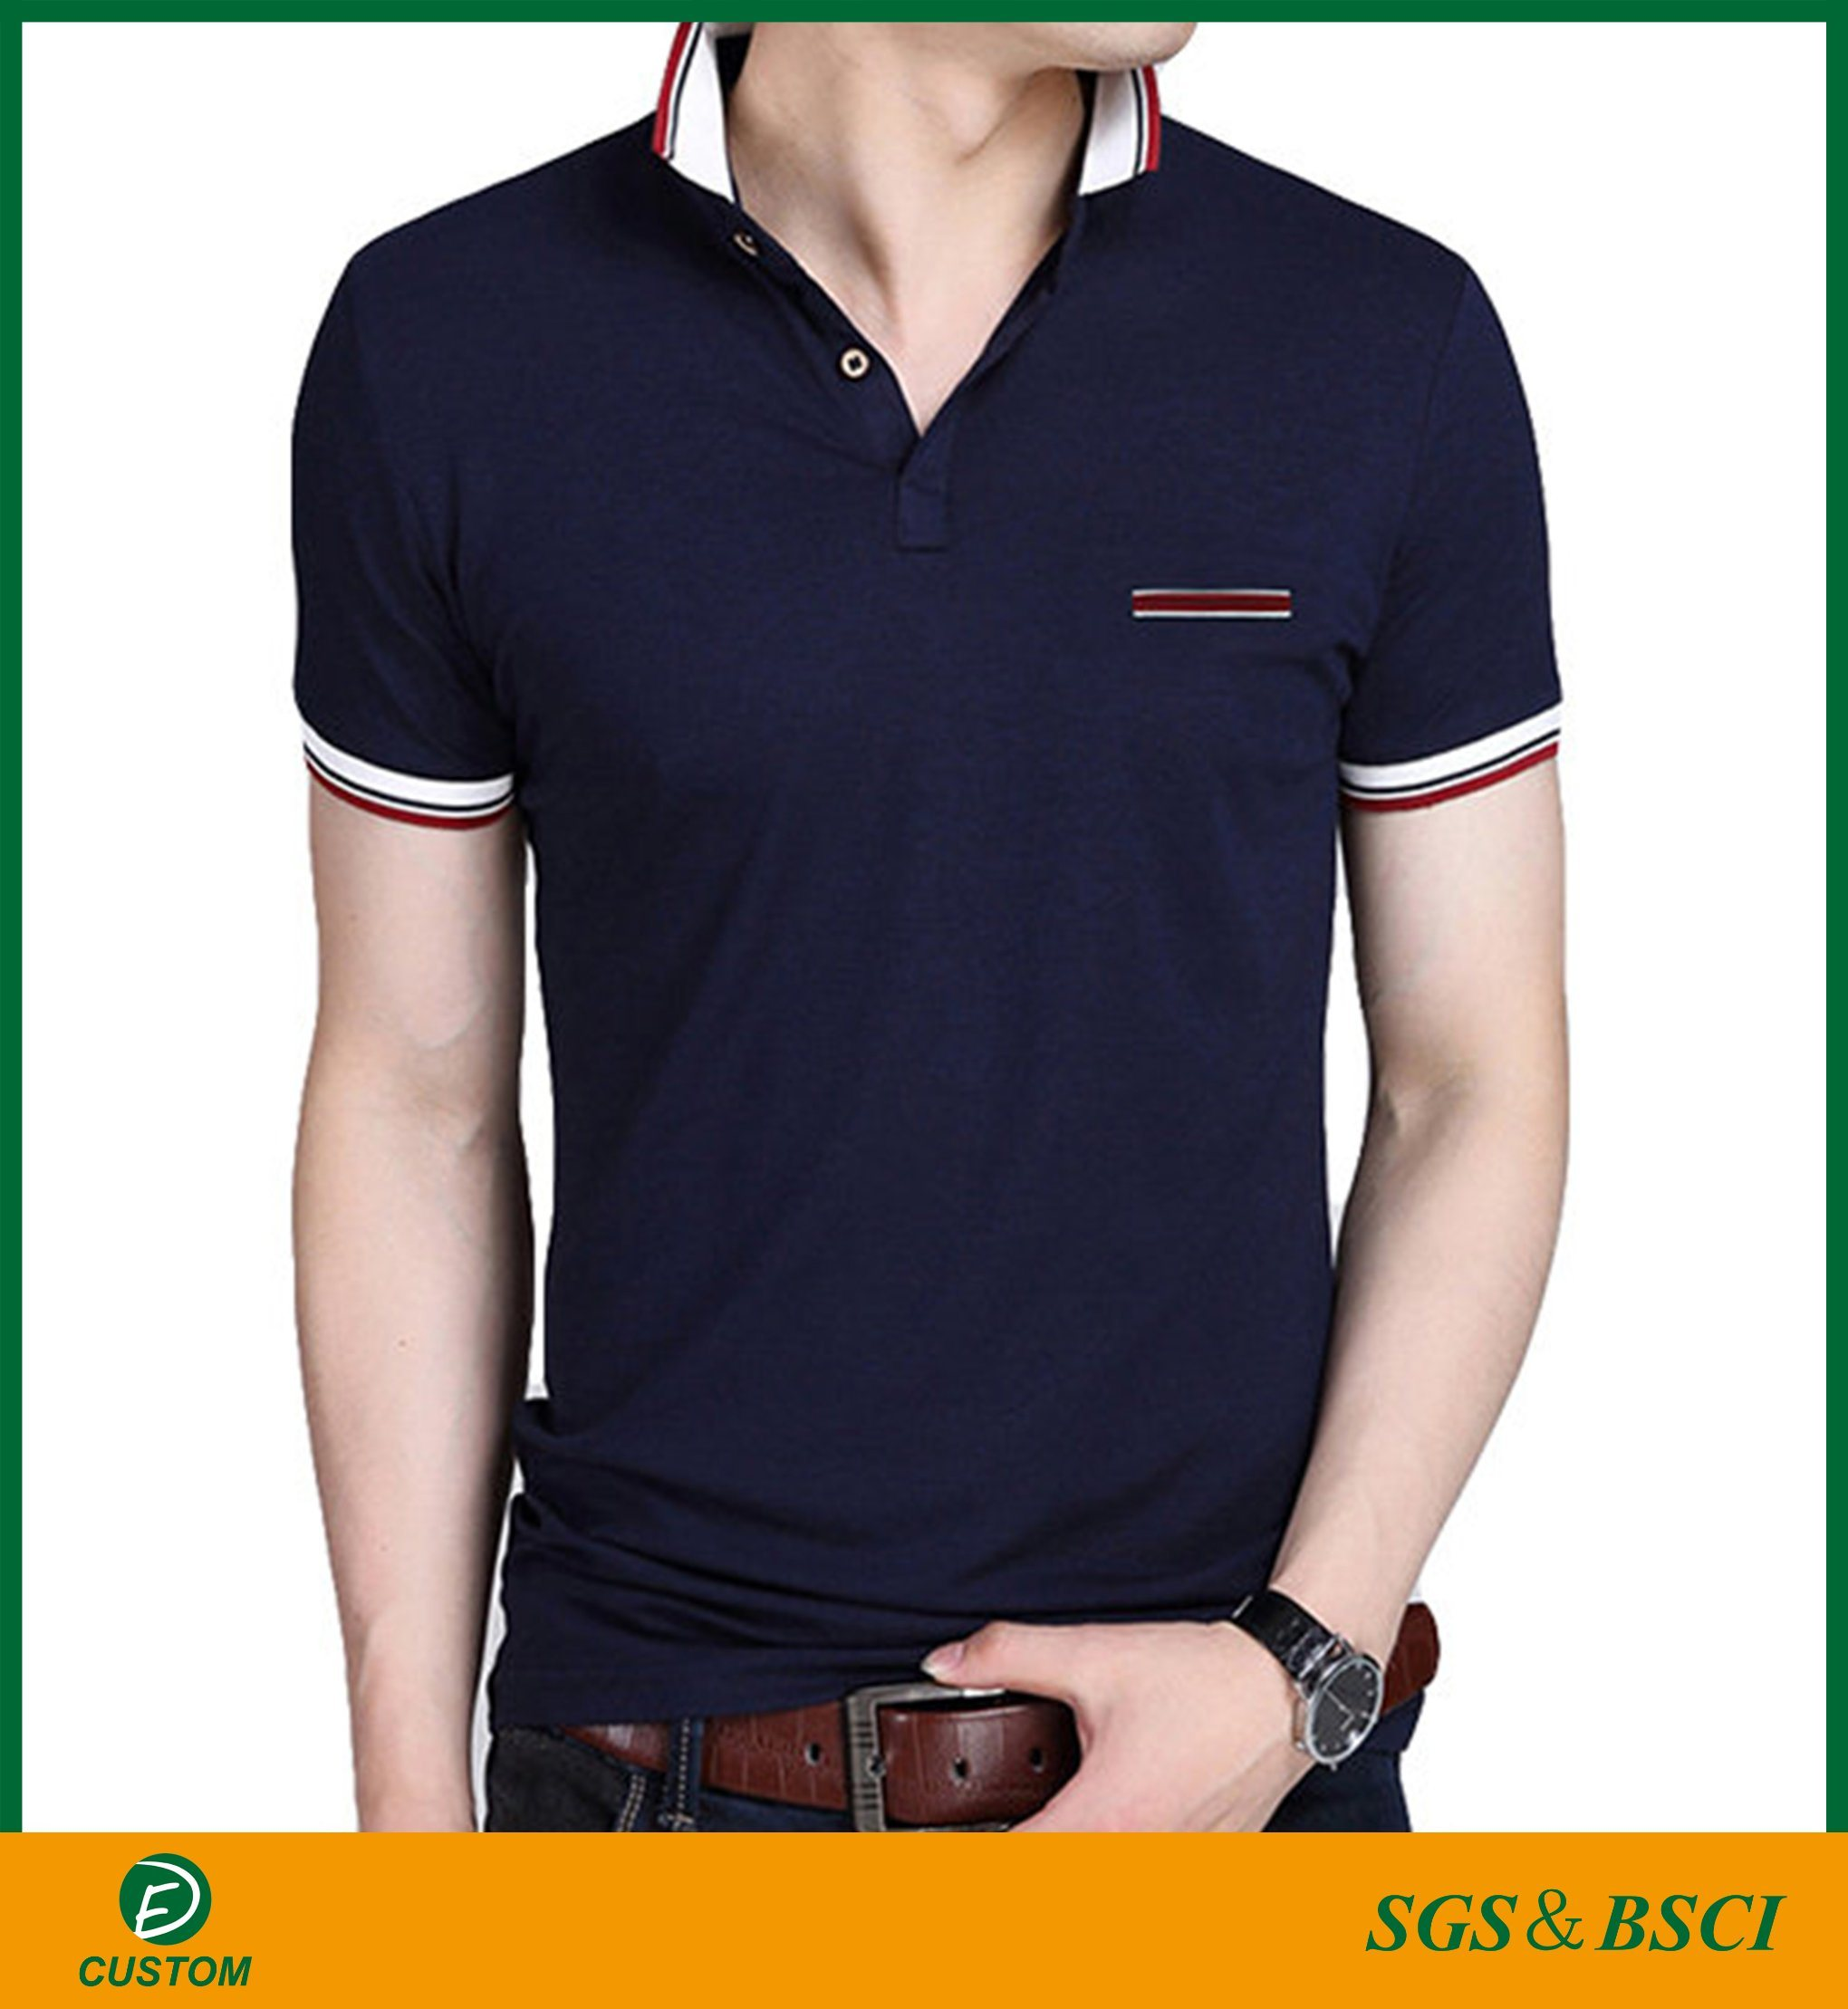 b1df82709d35 China Guangzhou Factory Best Quality Men′s Polo Shirts with Cheap Price -  China Polo Shirts